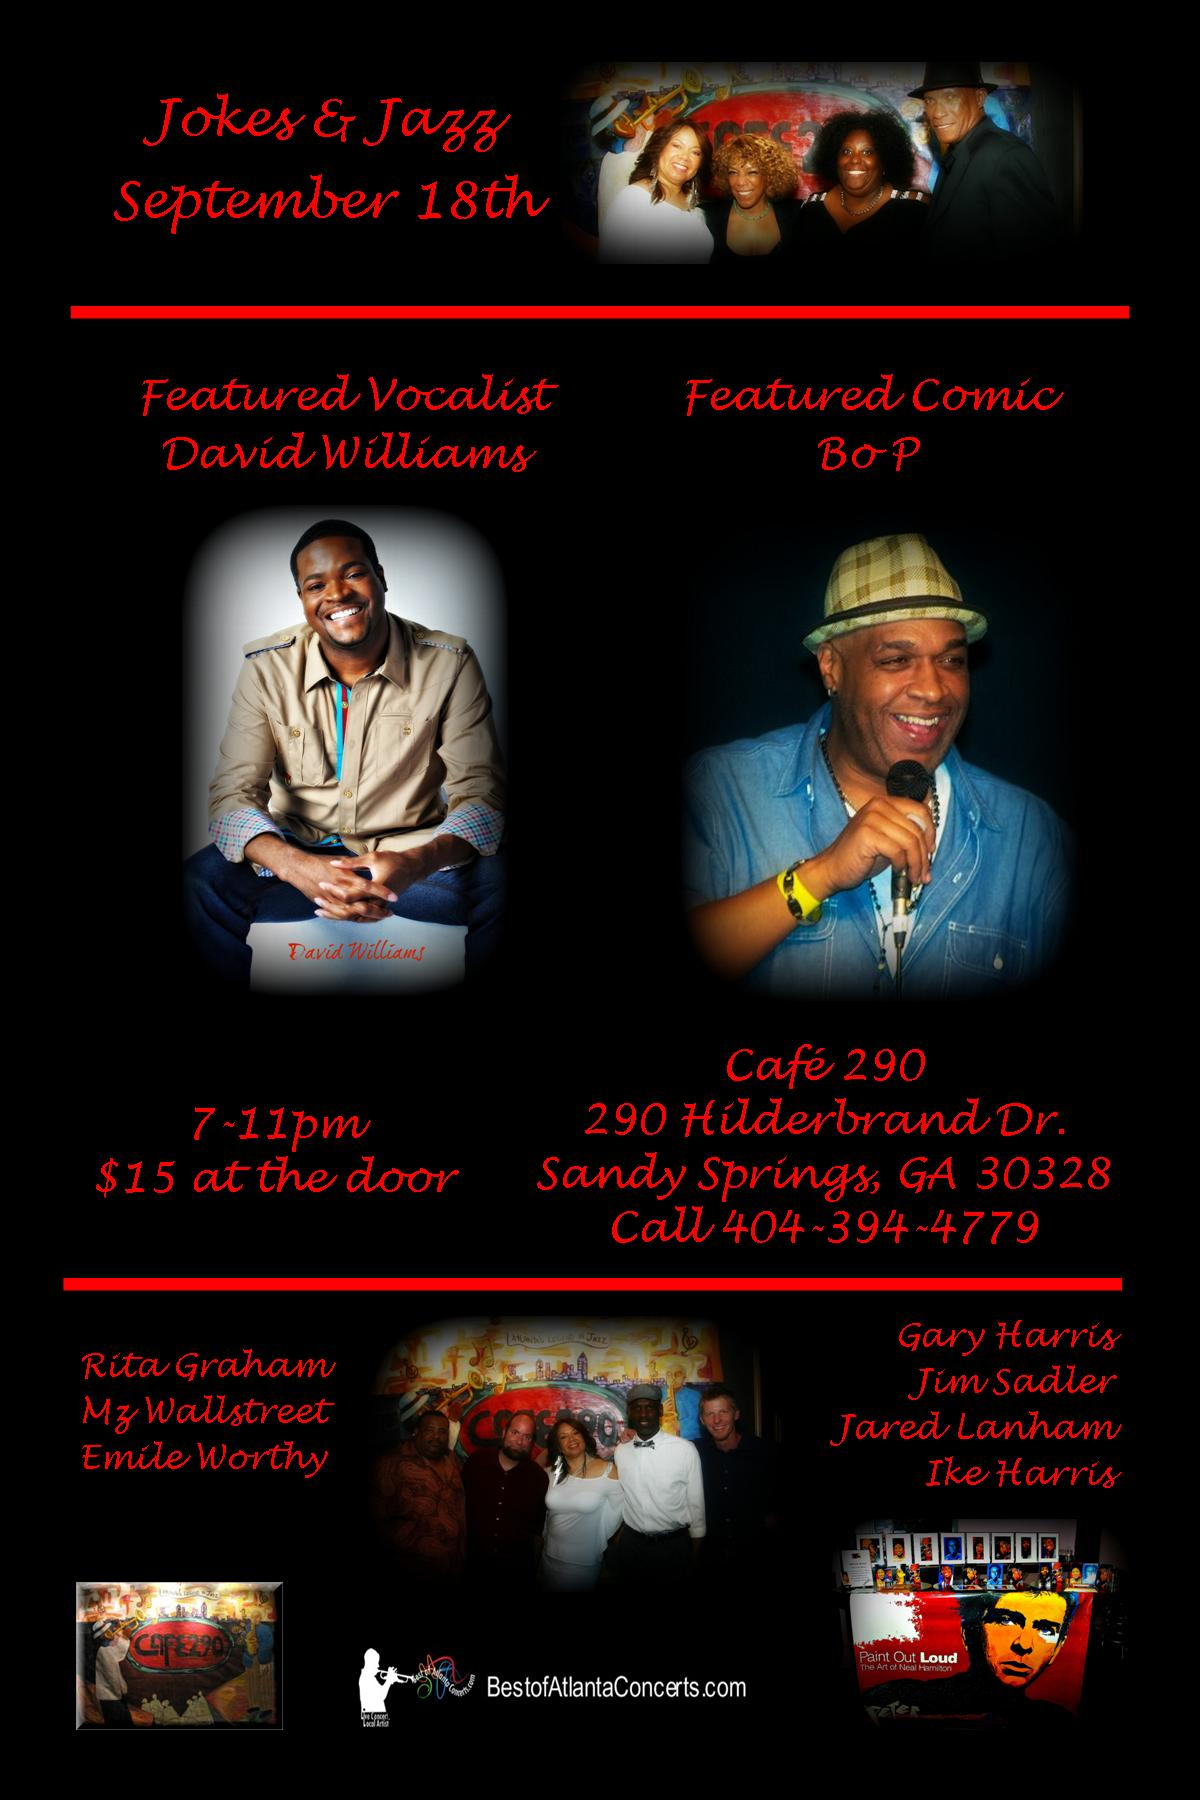 Jokes & Jazz September 18th